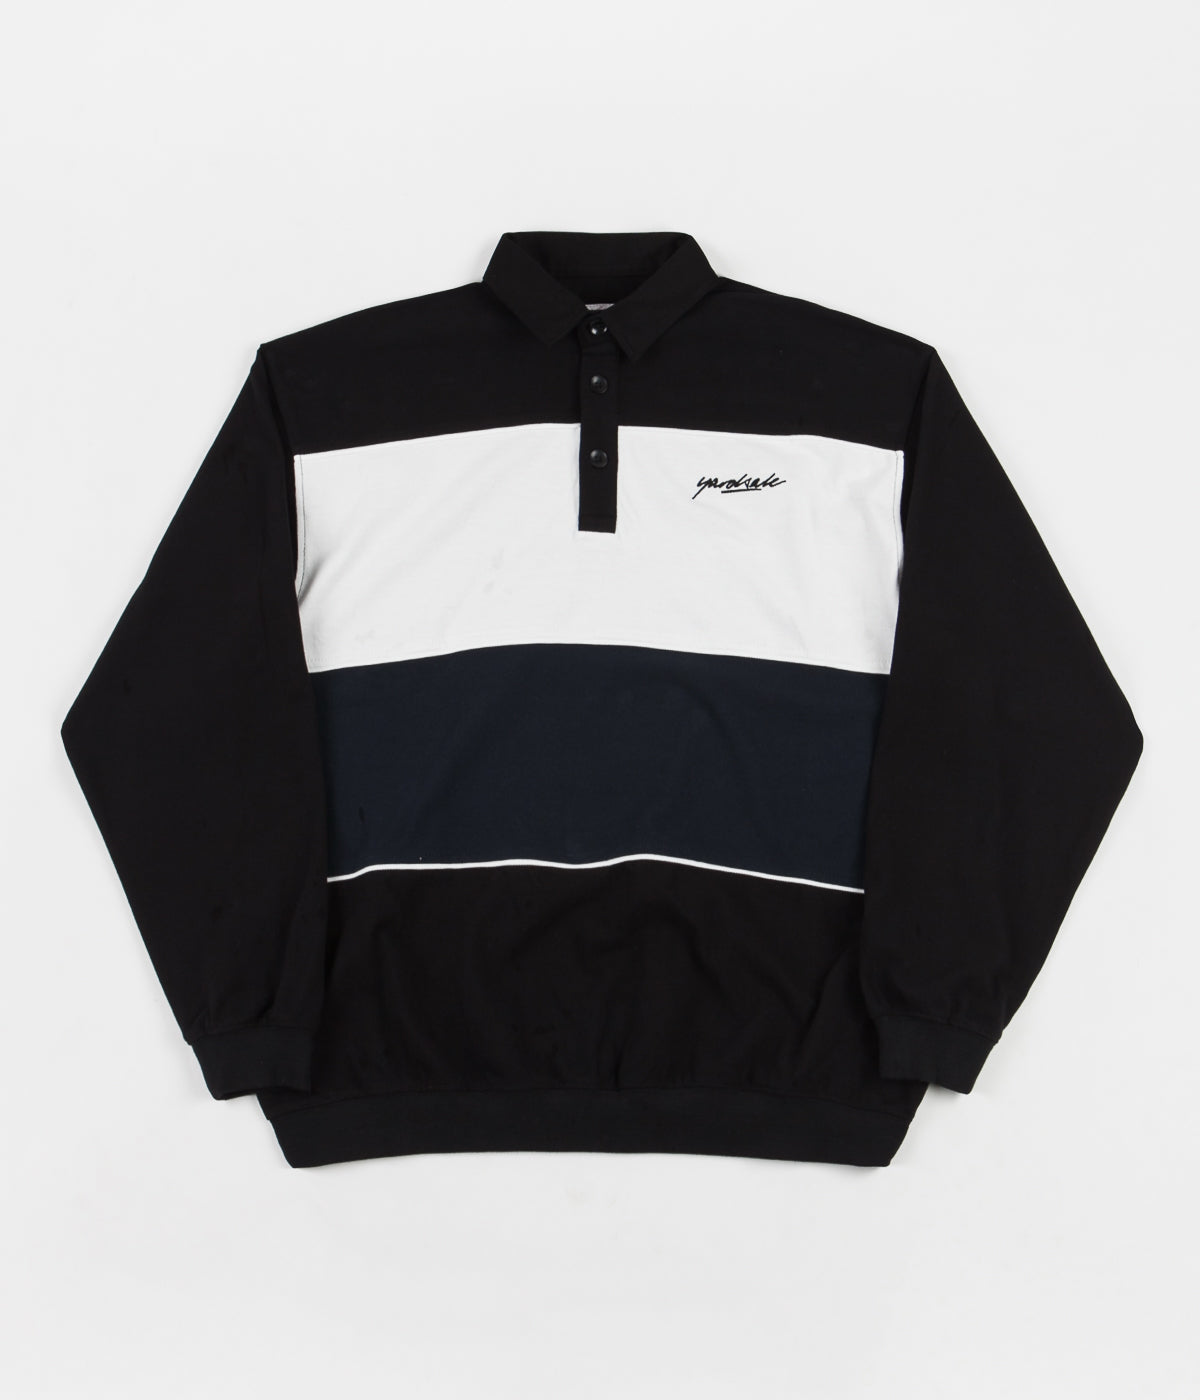 Yardsale Heat Polo Sweatshirt - Black